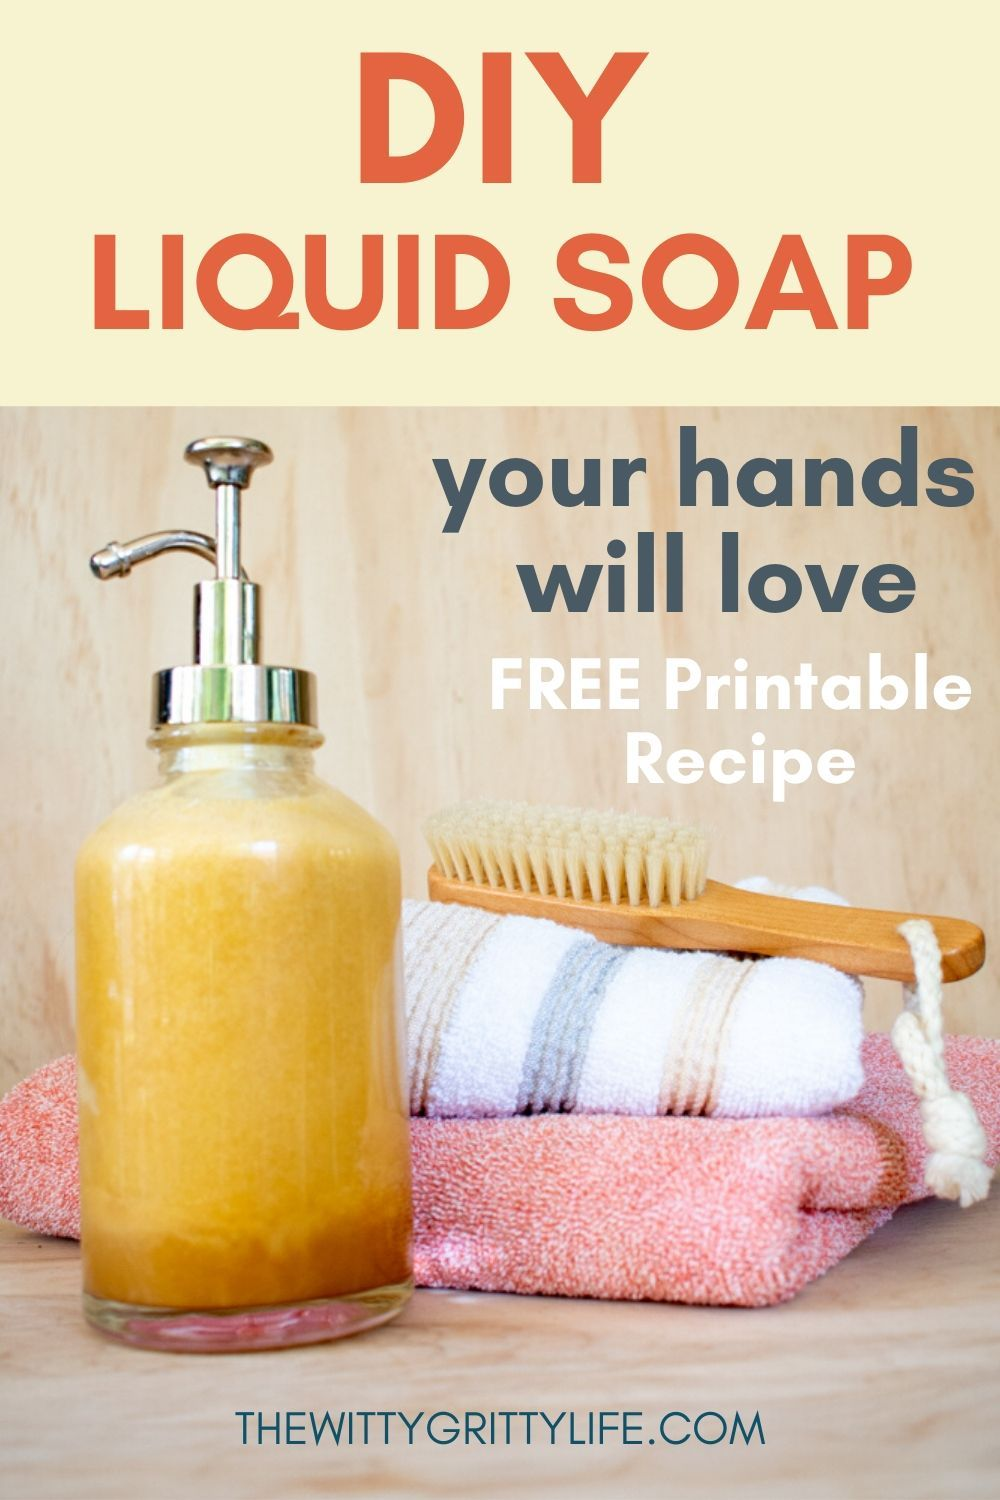 How to Make Liquid Soap that is Actually Good for Your